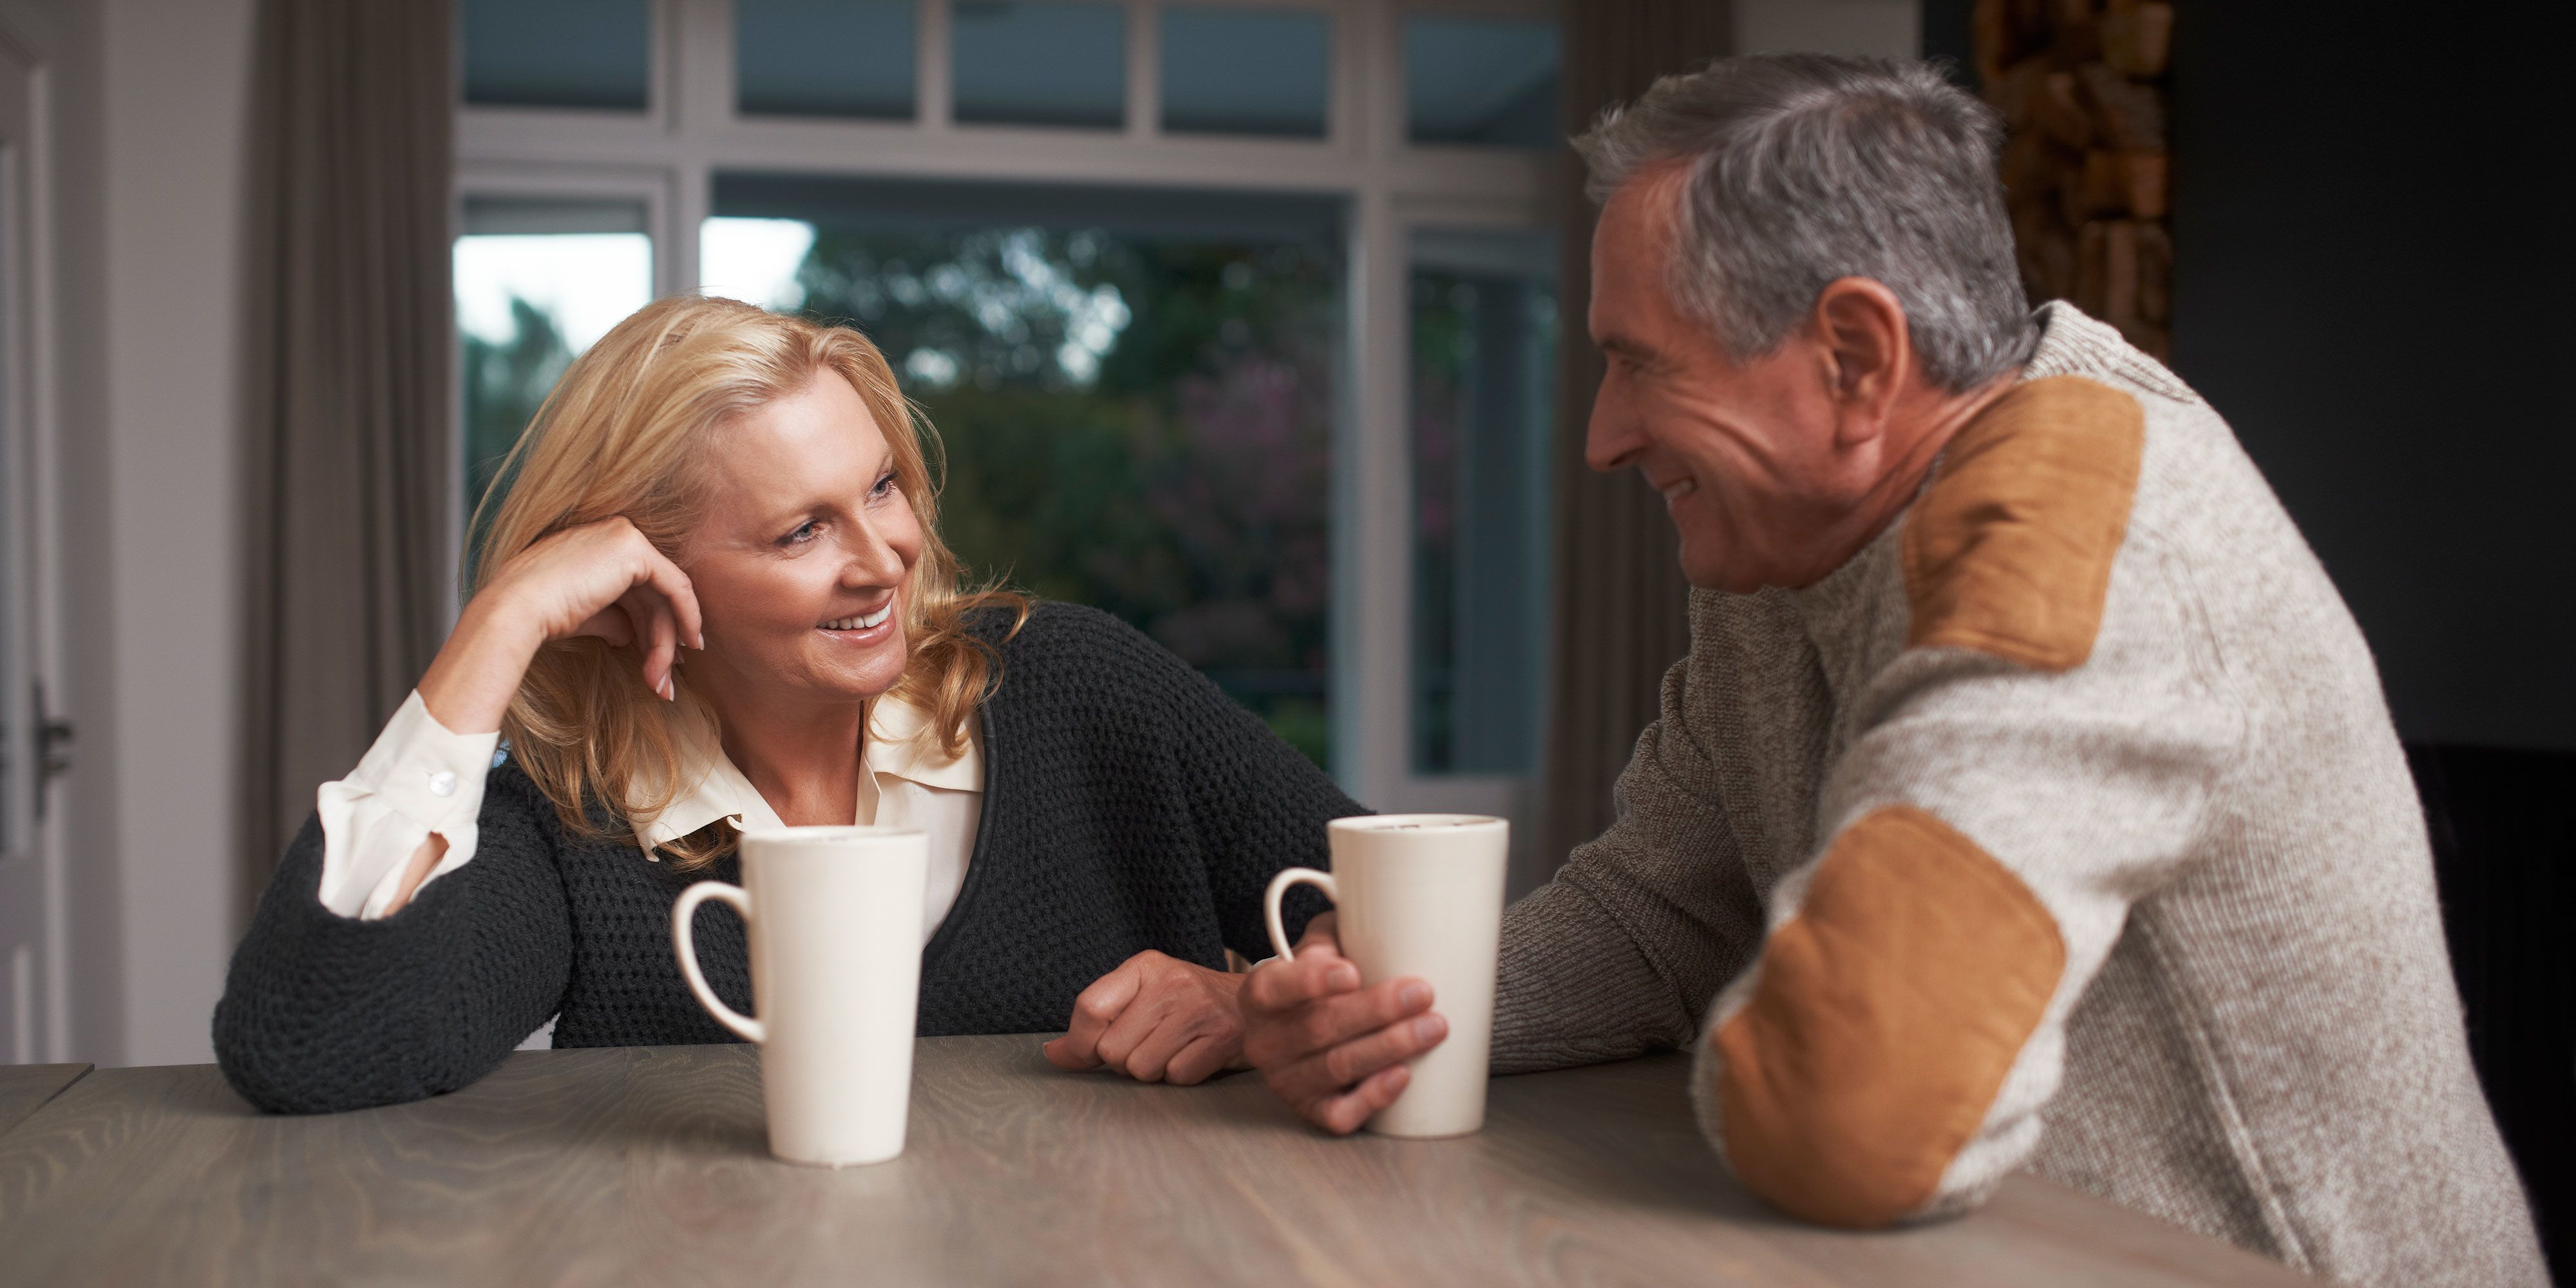 How to start dating after being widowed